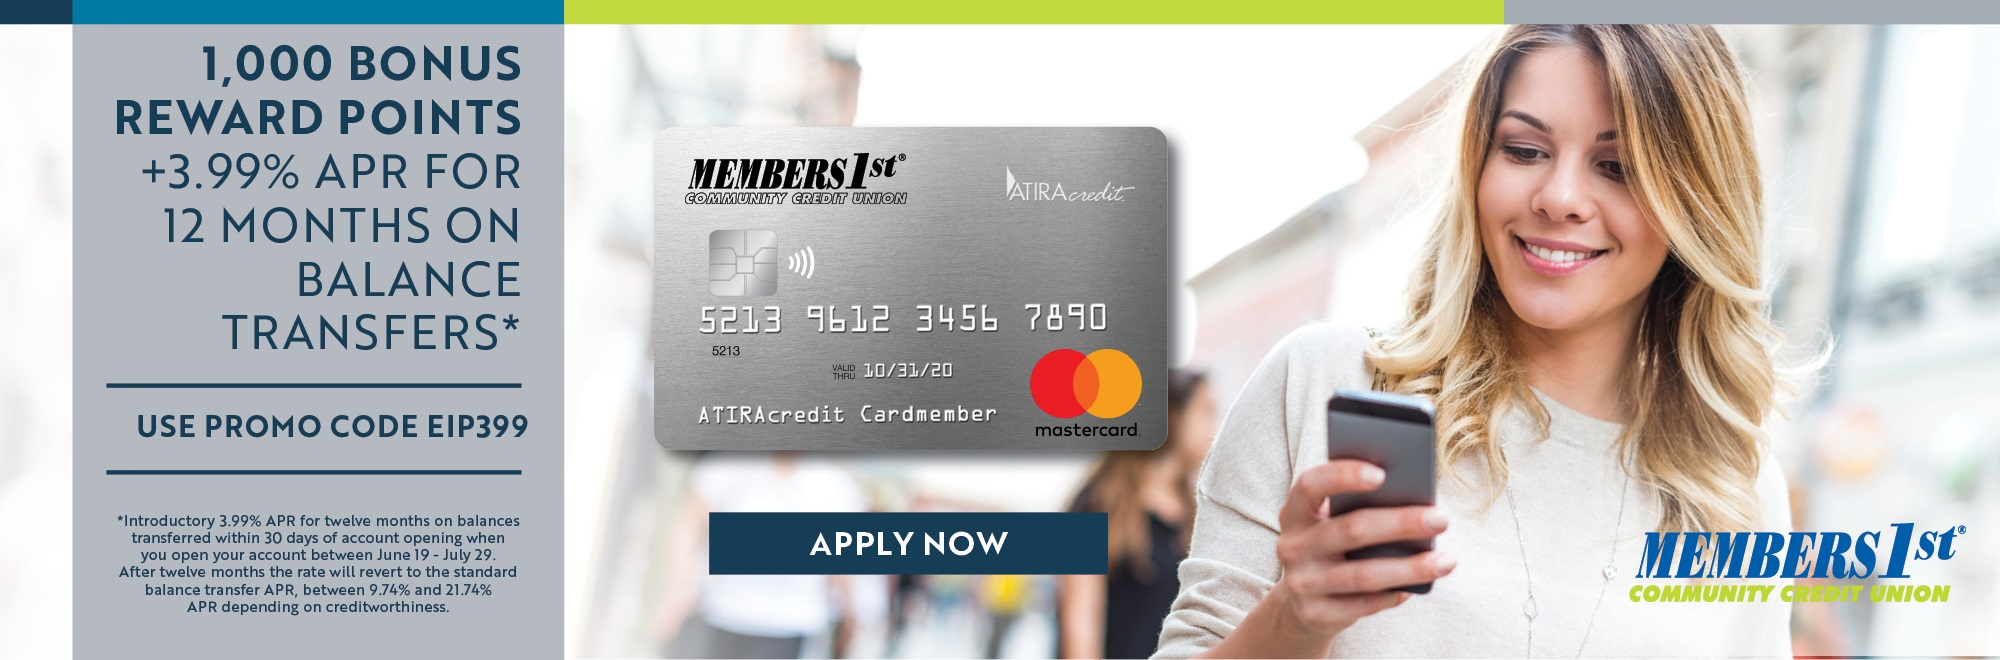 Open a credit card with members first and when you transfer any balance to your new card, you will receive a low introductory rate for twelve months plus one thousand bonus points. click here to learn more.